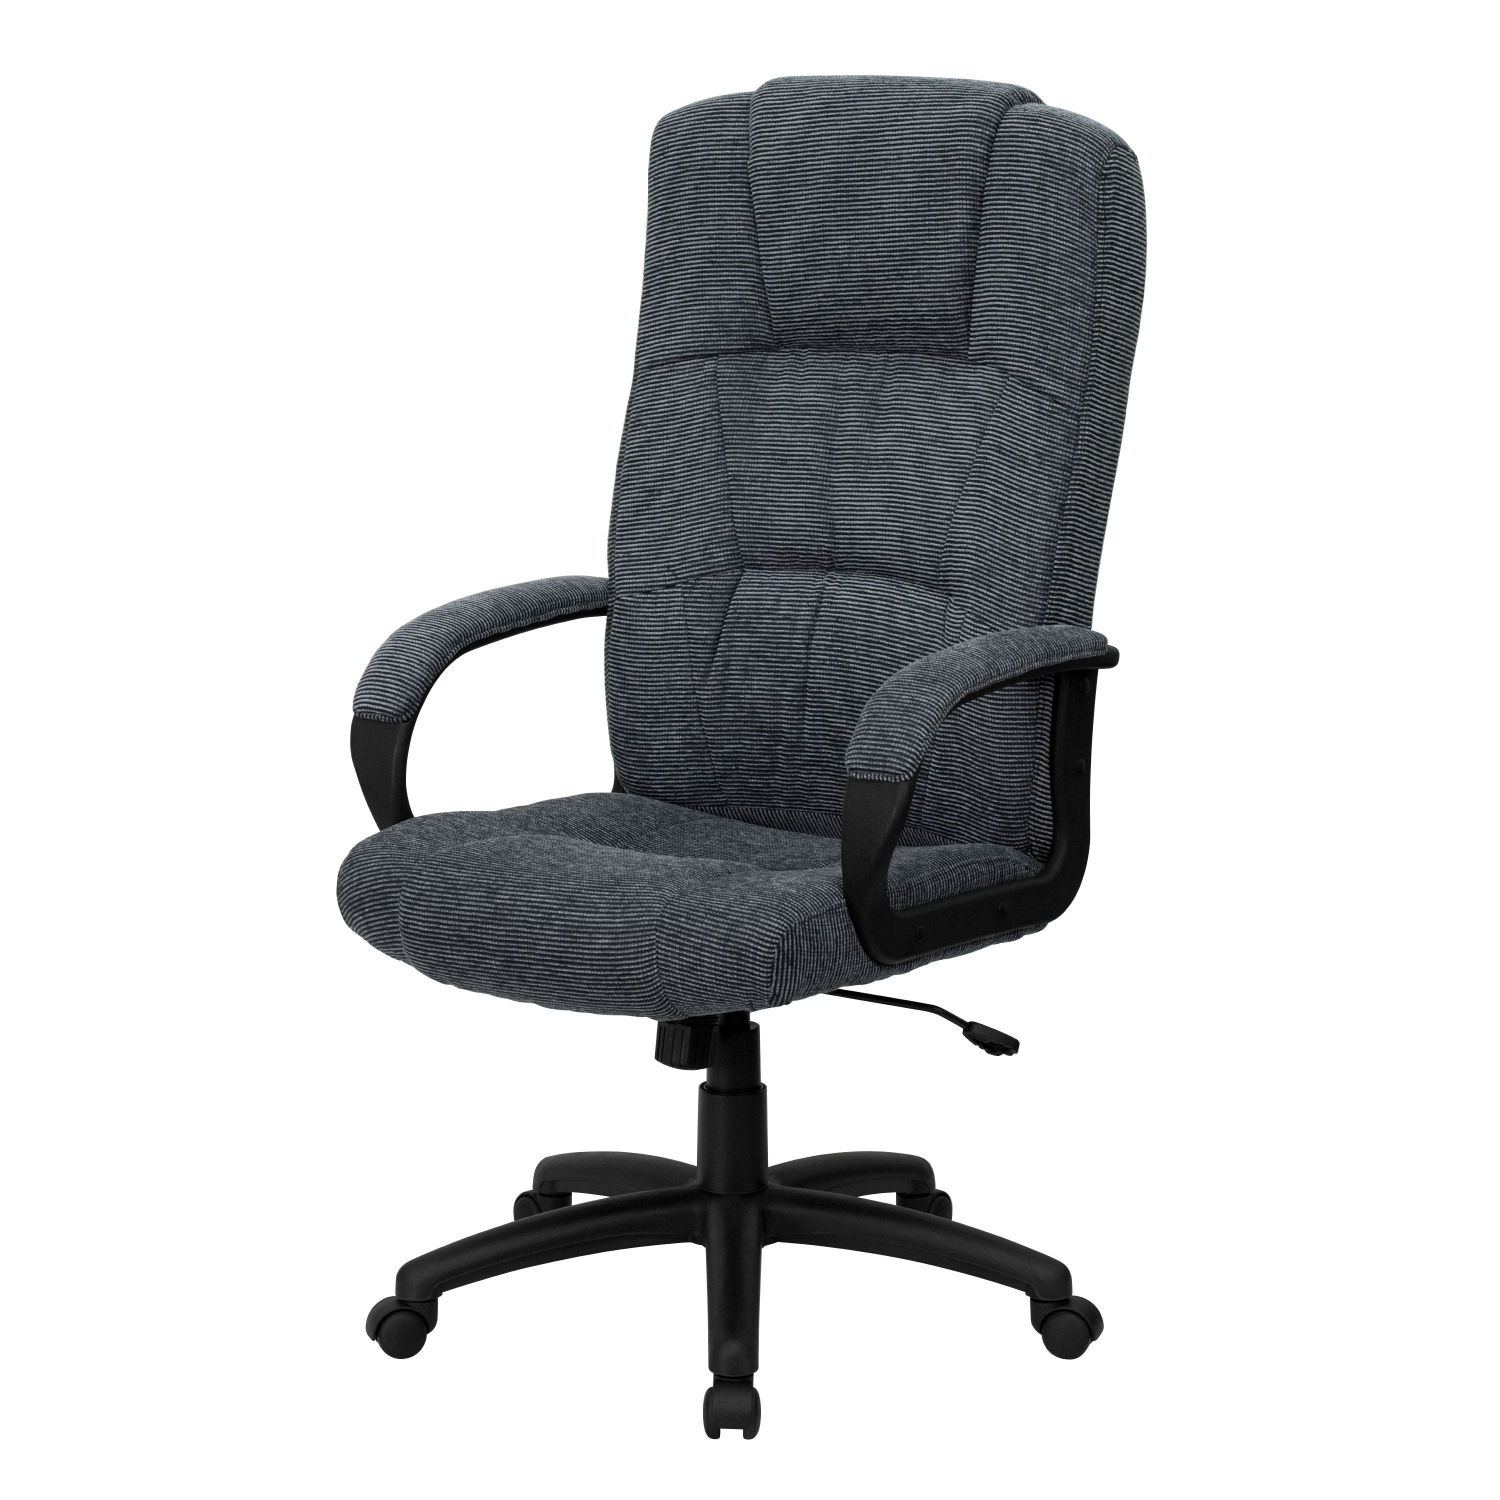 Furniture Bt 9022 Bk Gg High Back Gray Fabric Executive Office Chair Throughout Most Popular Fabric Executive Office Chairs (View 11 of 20)